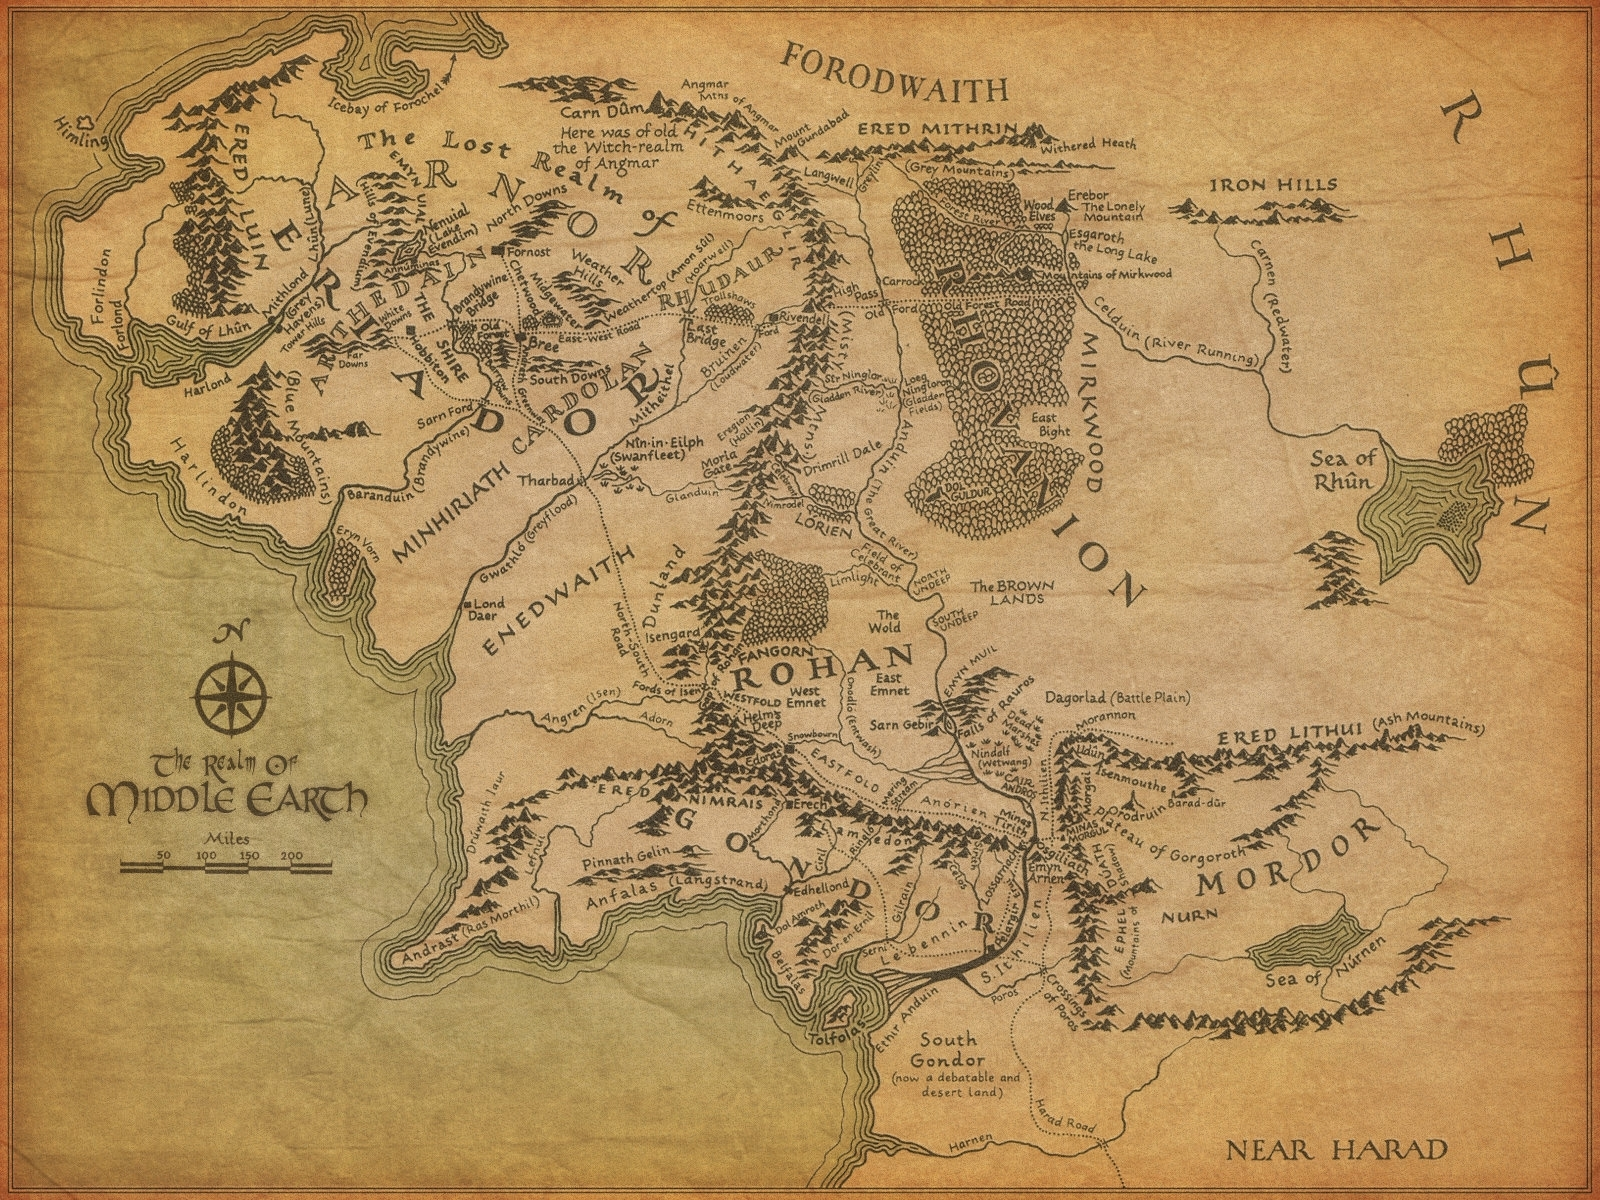 map of middle-earthjonothing #lotr #tolkien #hobbit #thranduil